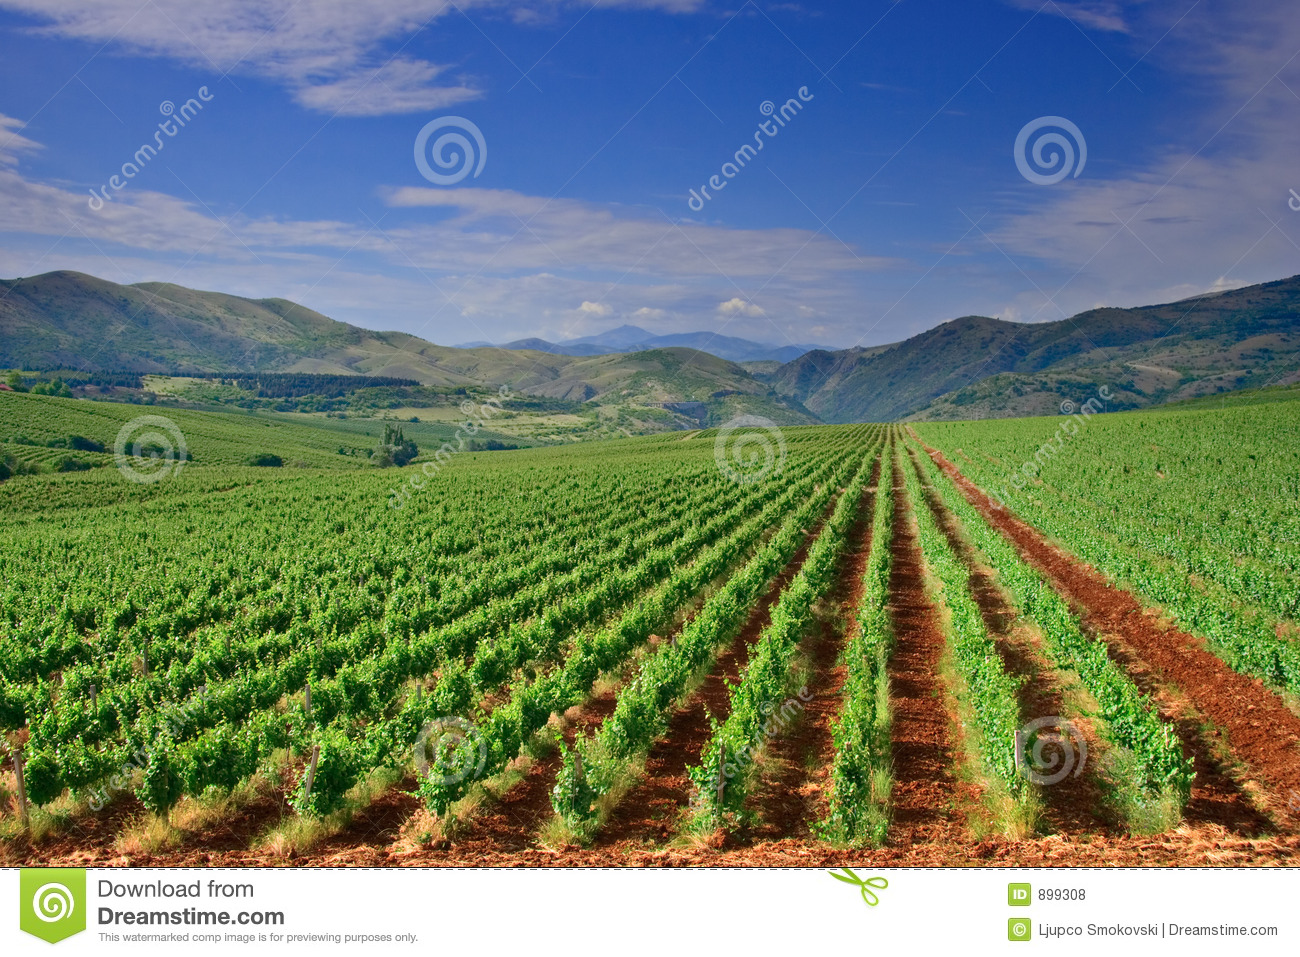 A view of a vineyard field in Macedonia